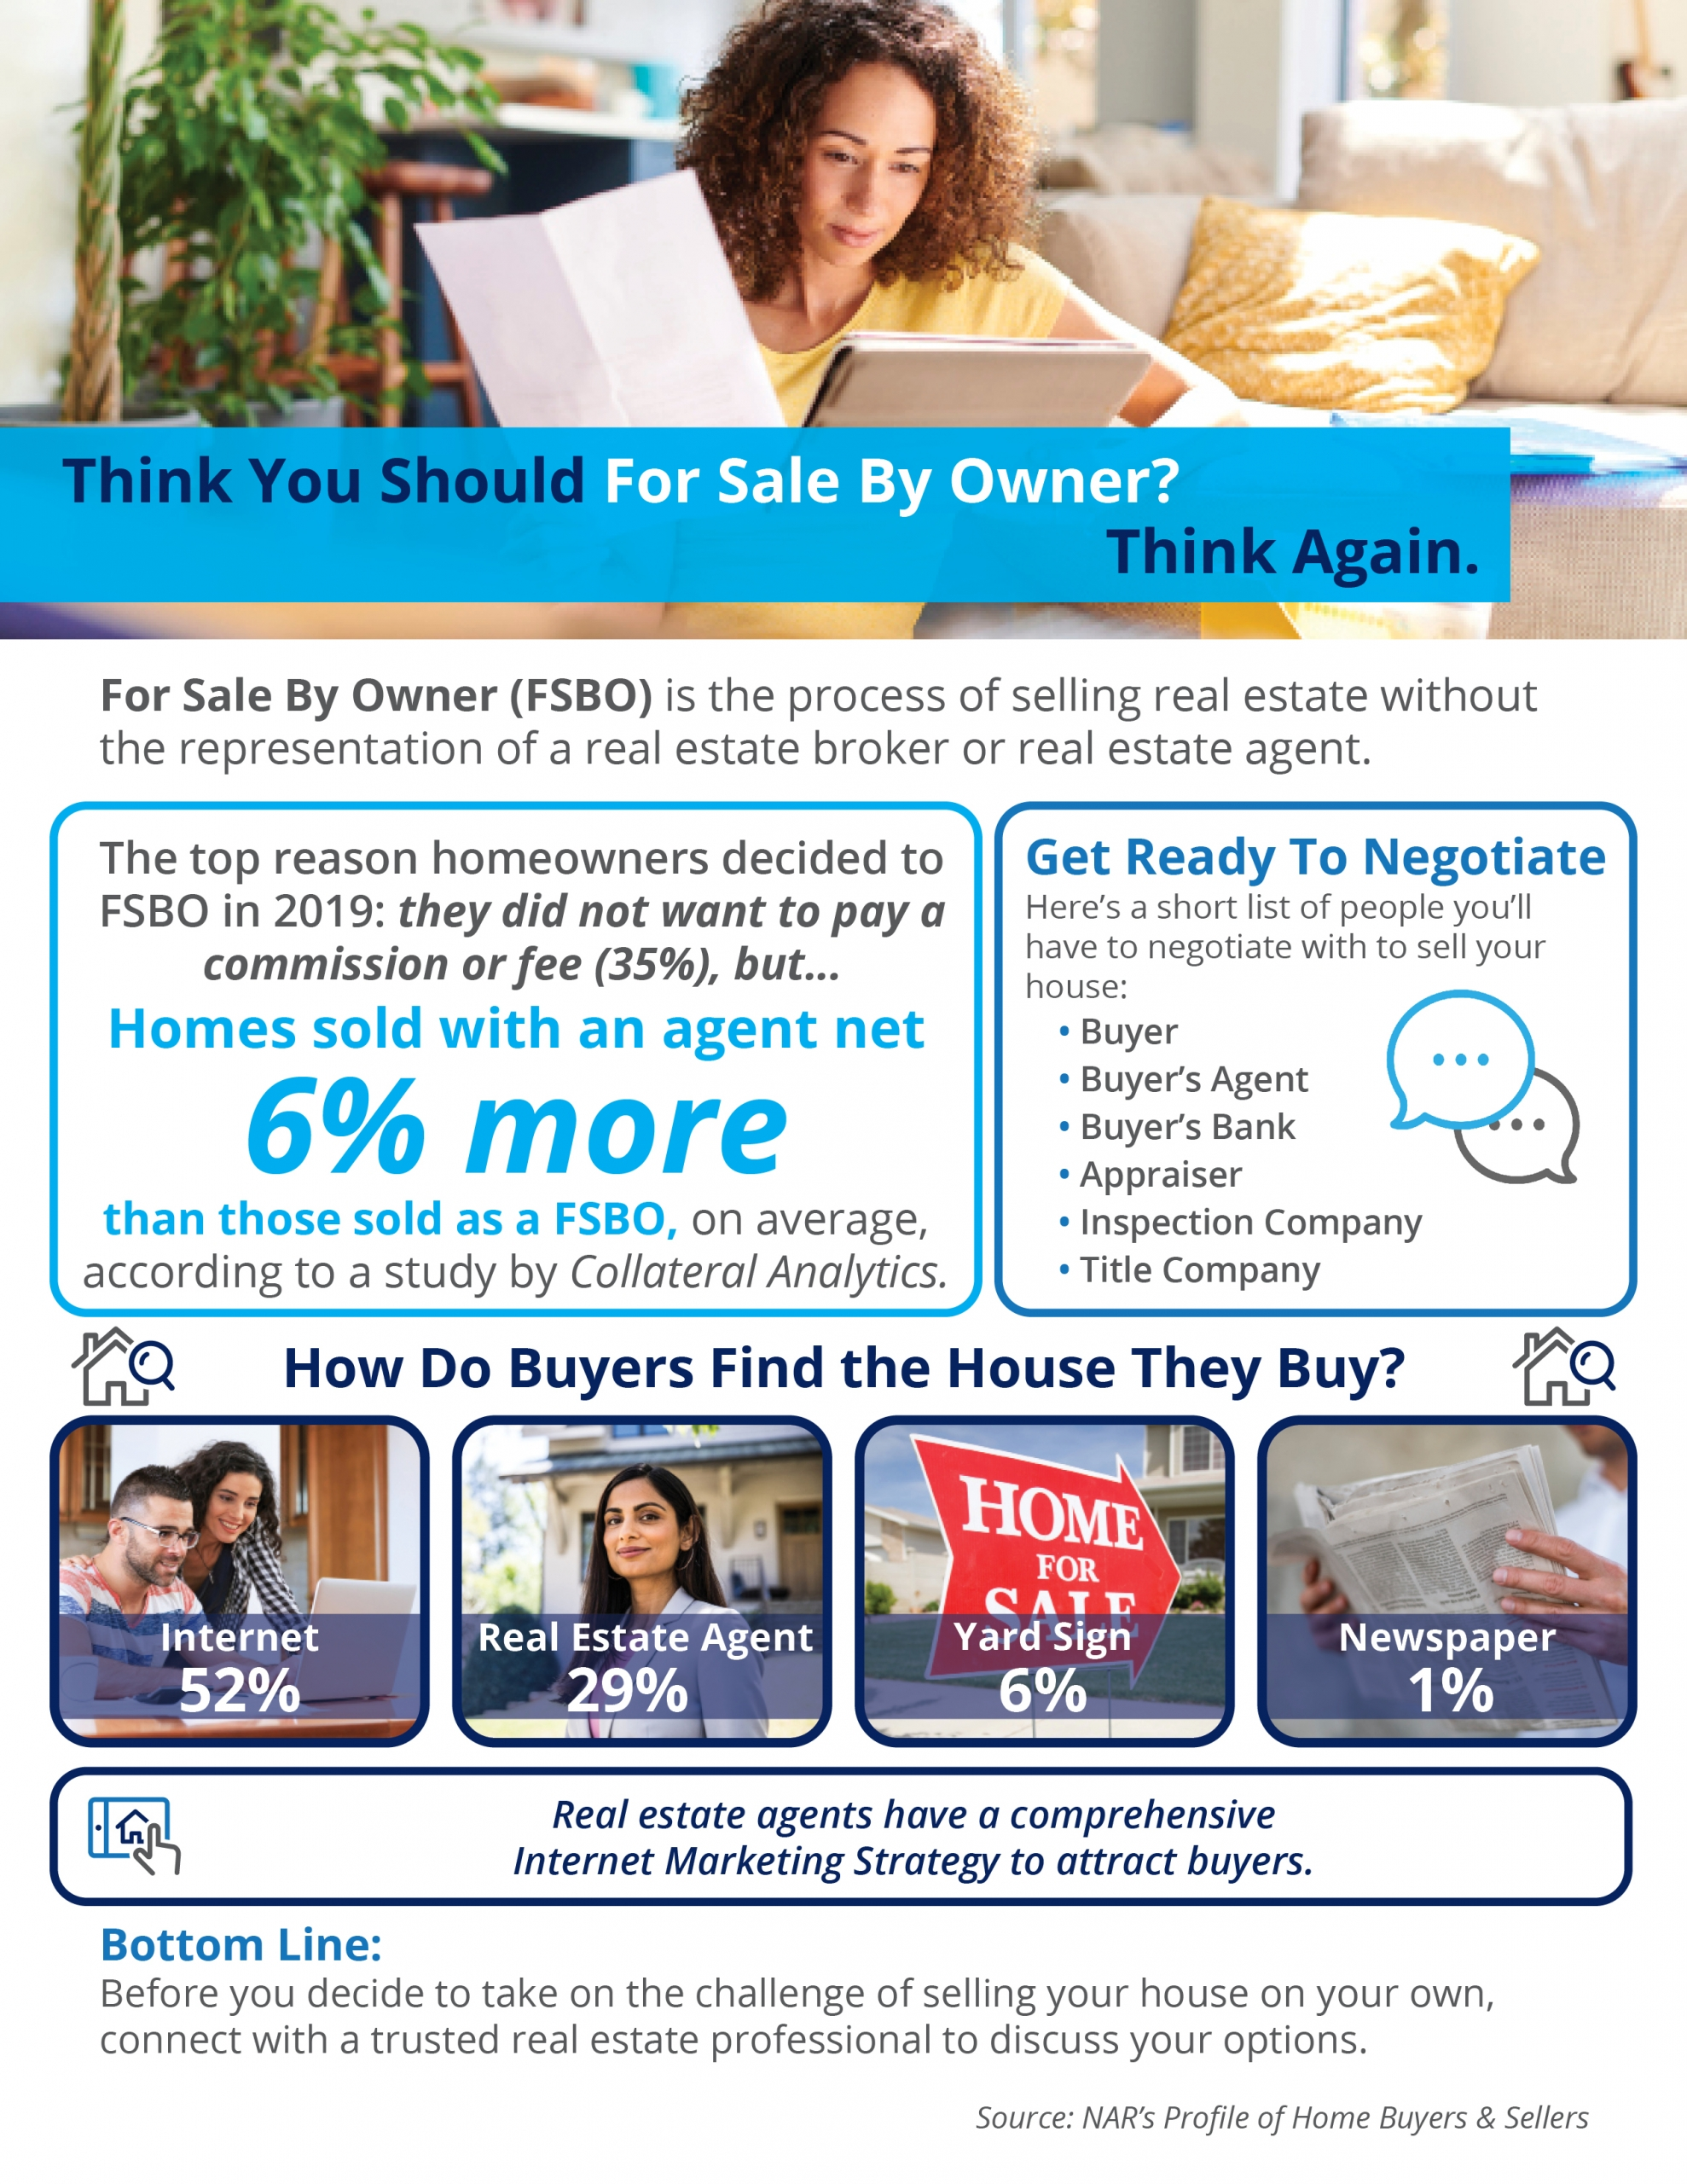 Think You Should For Sale By Owner? Think Again [INFOGRAPHIC] | Bridge Builders